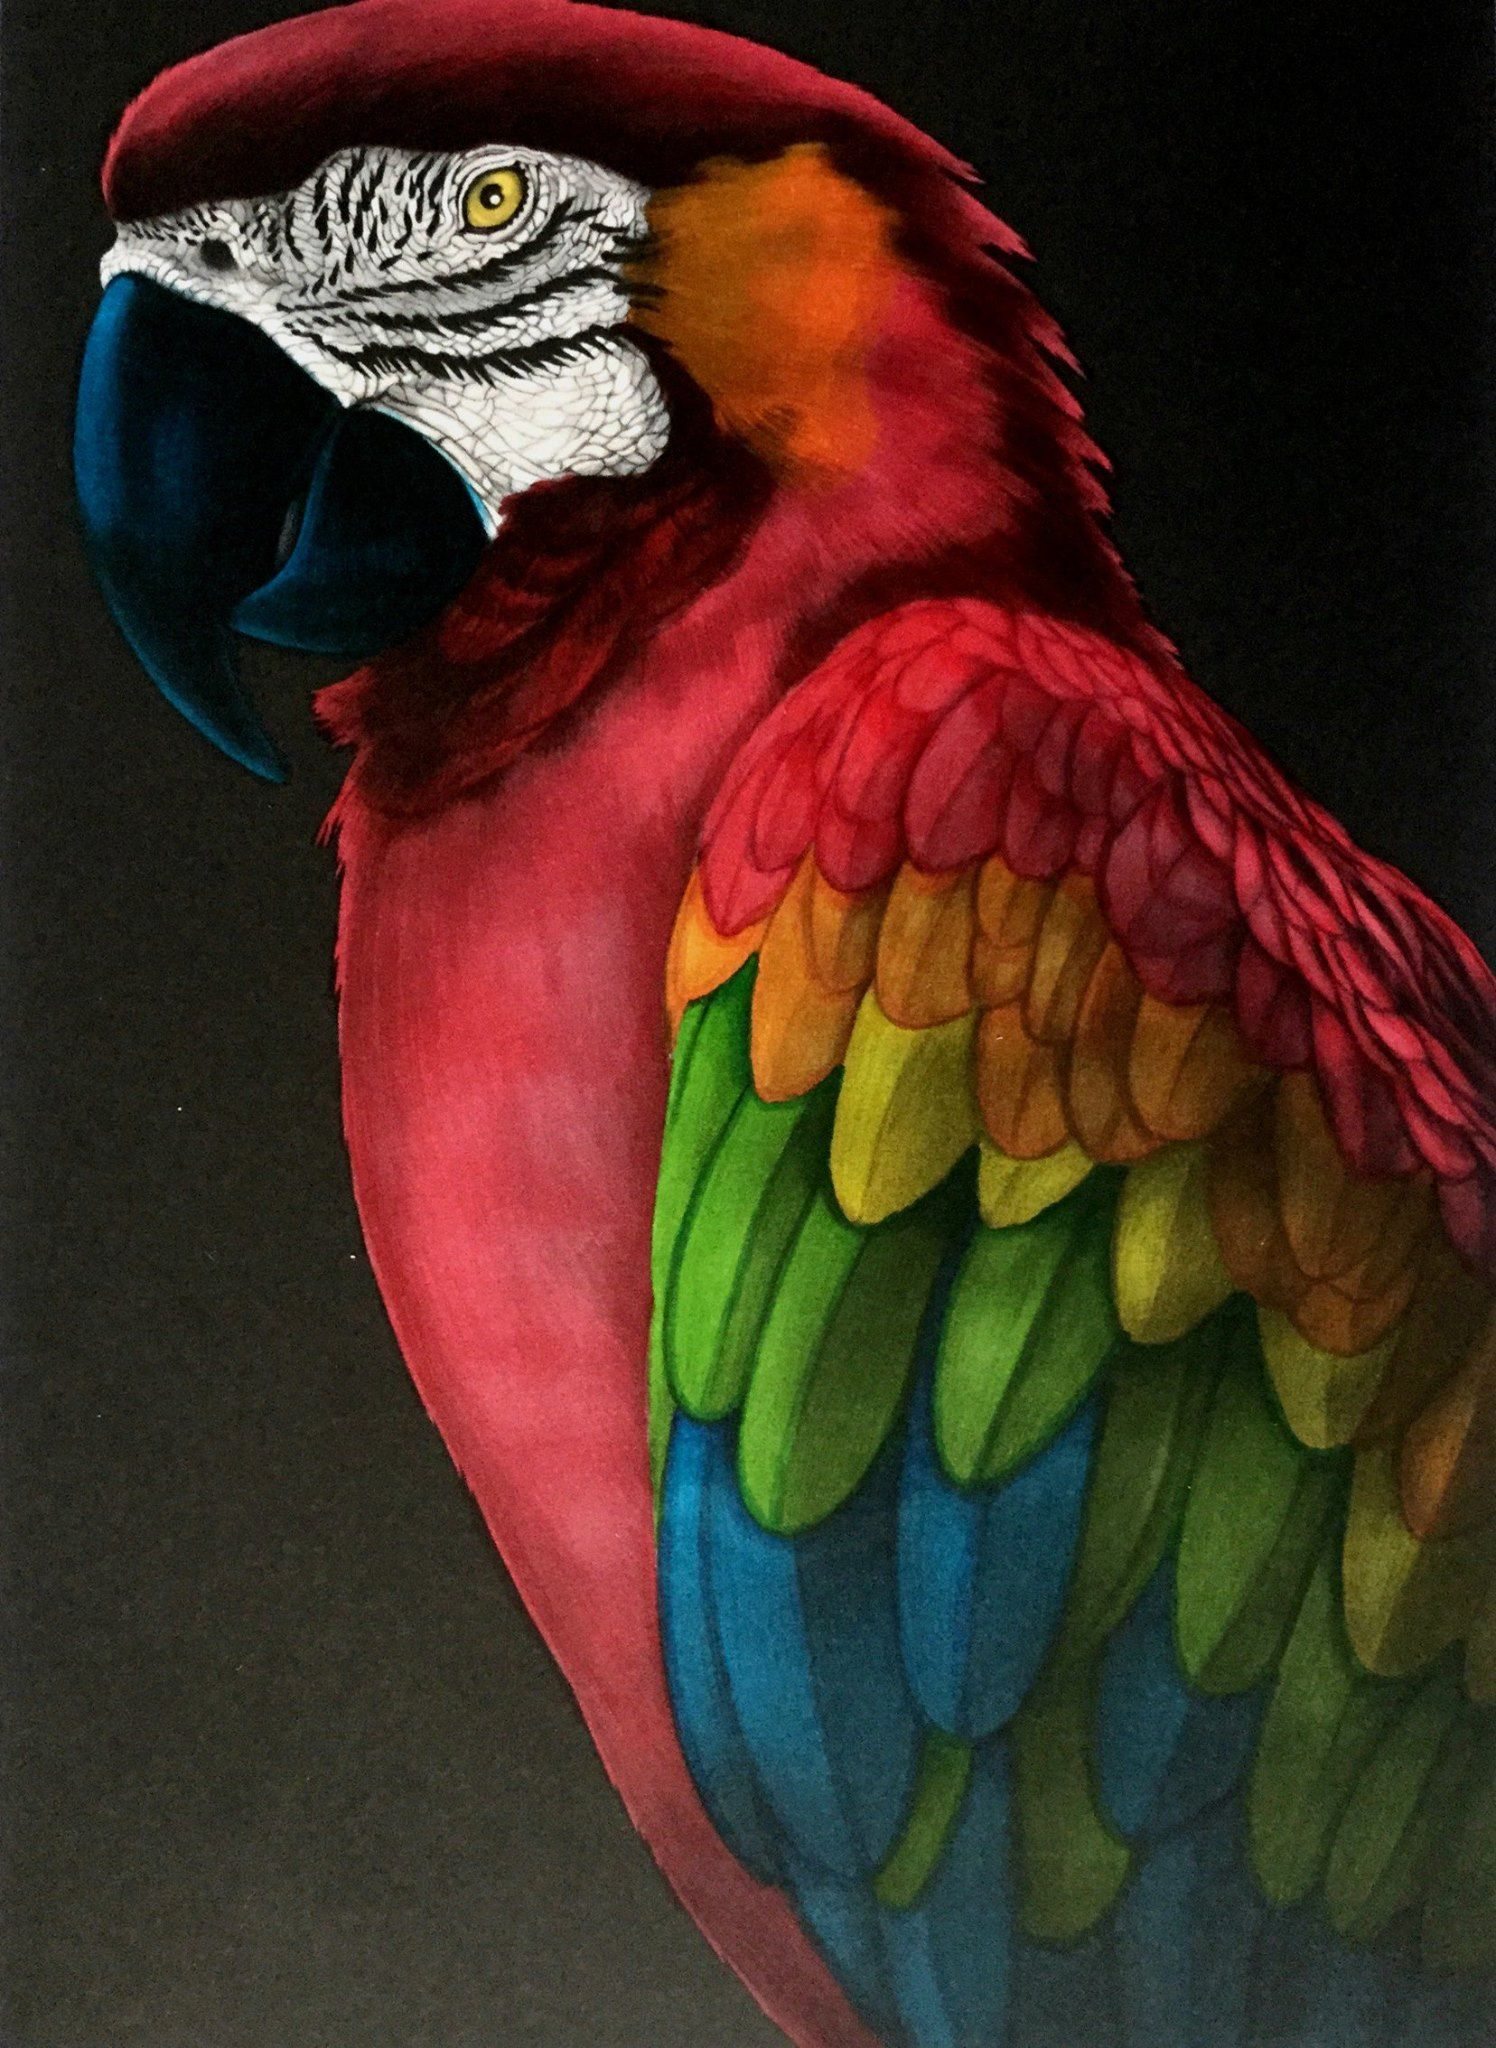 Macaw 2 by Benji Jager | Aves hermosas | Pinterest | Loros, Ave y ...